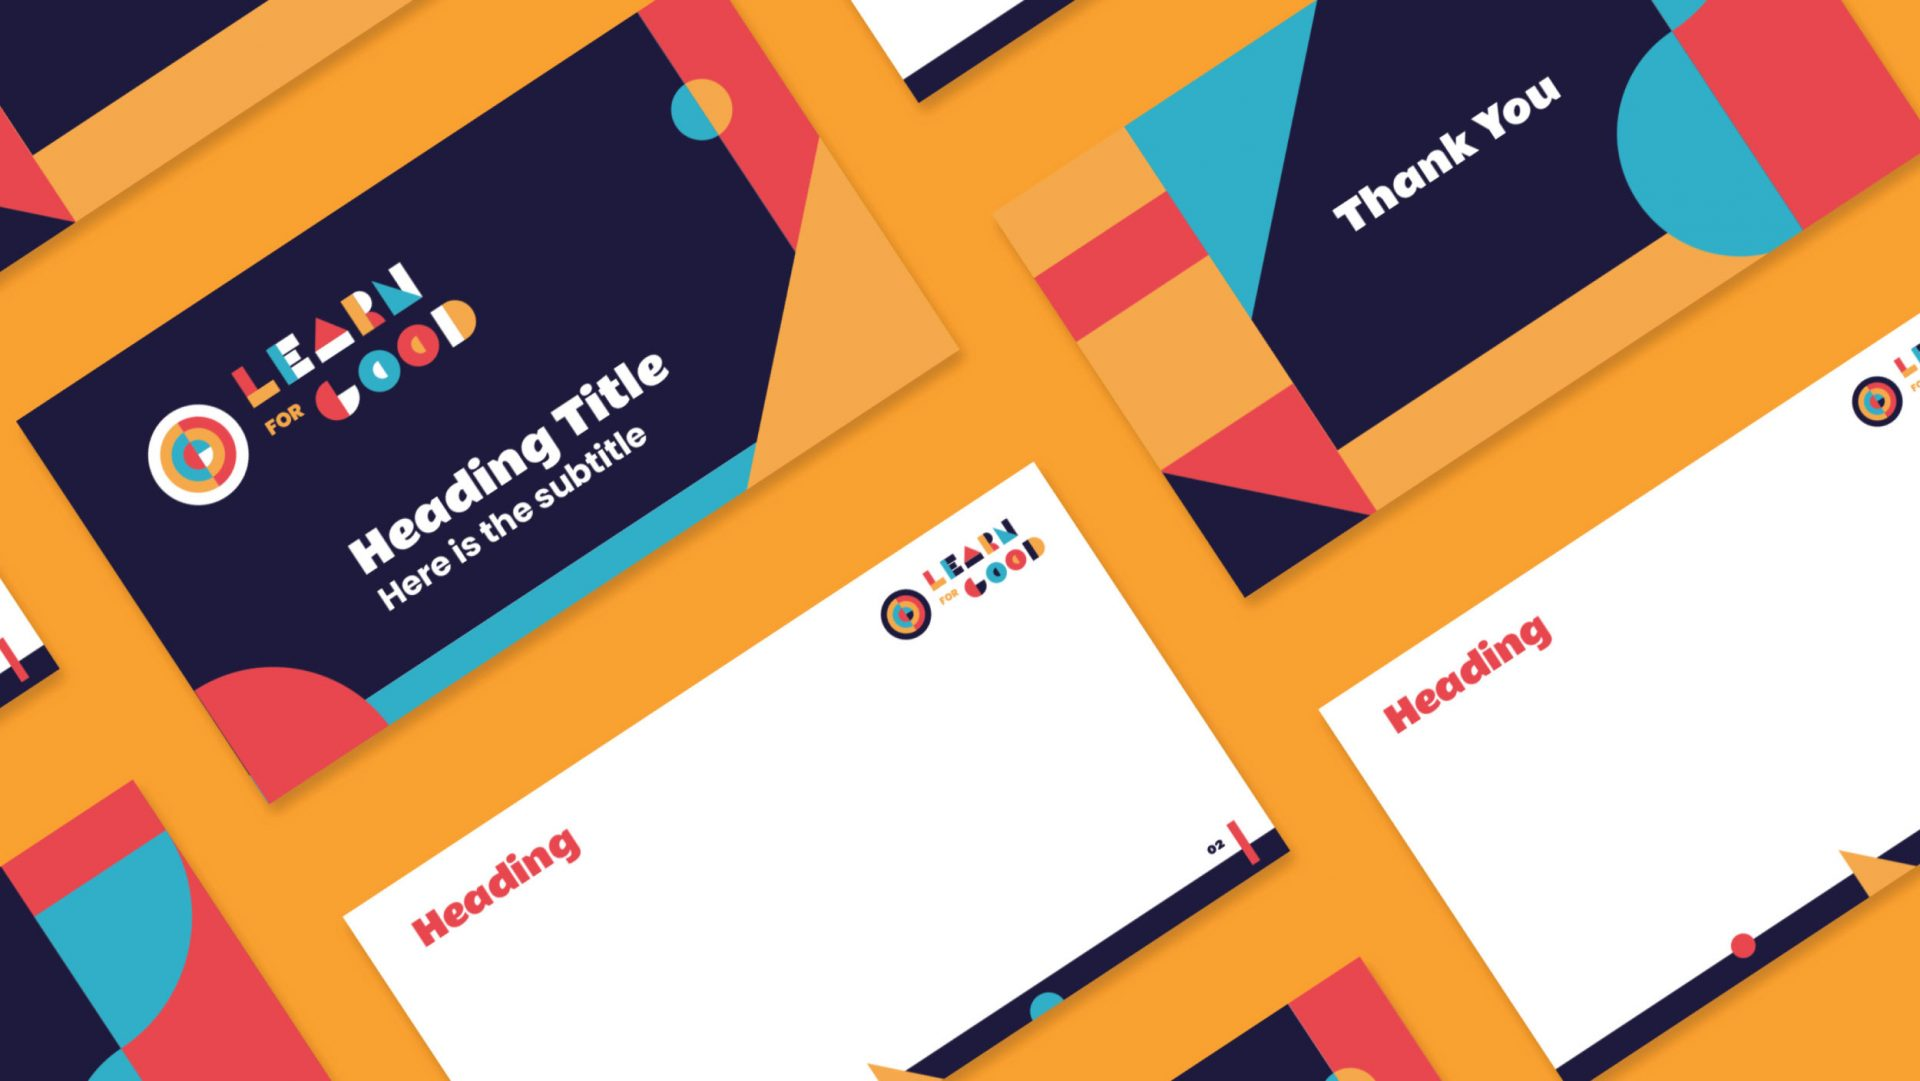 Powerpoint Template design for Learn for Good incorporating new brand identity